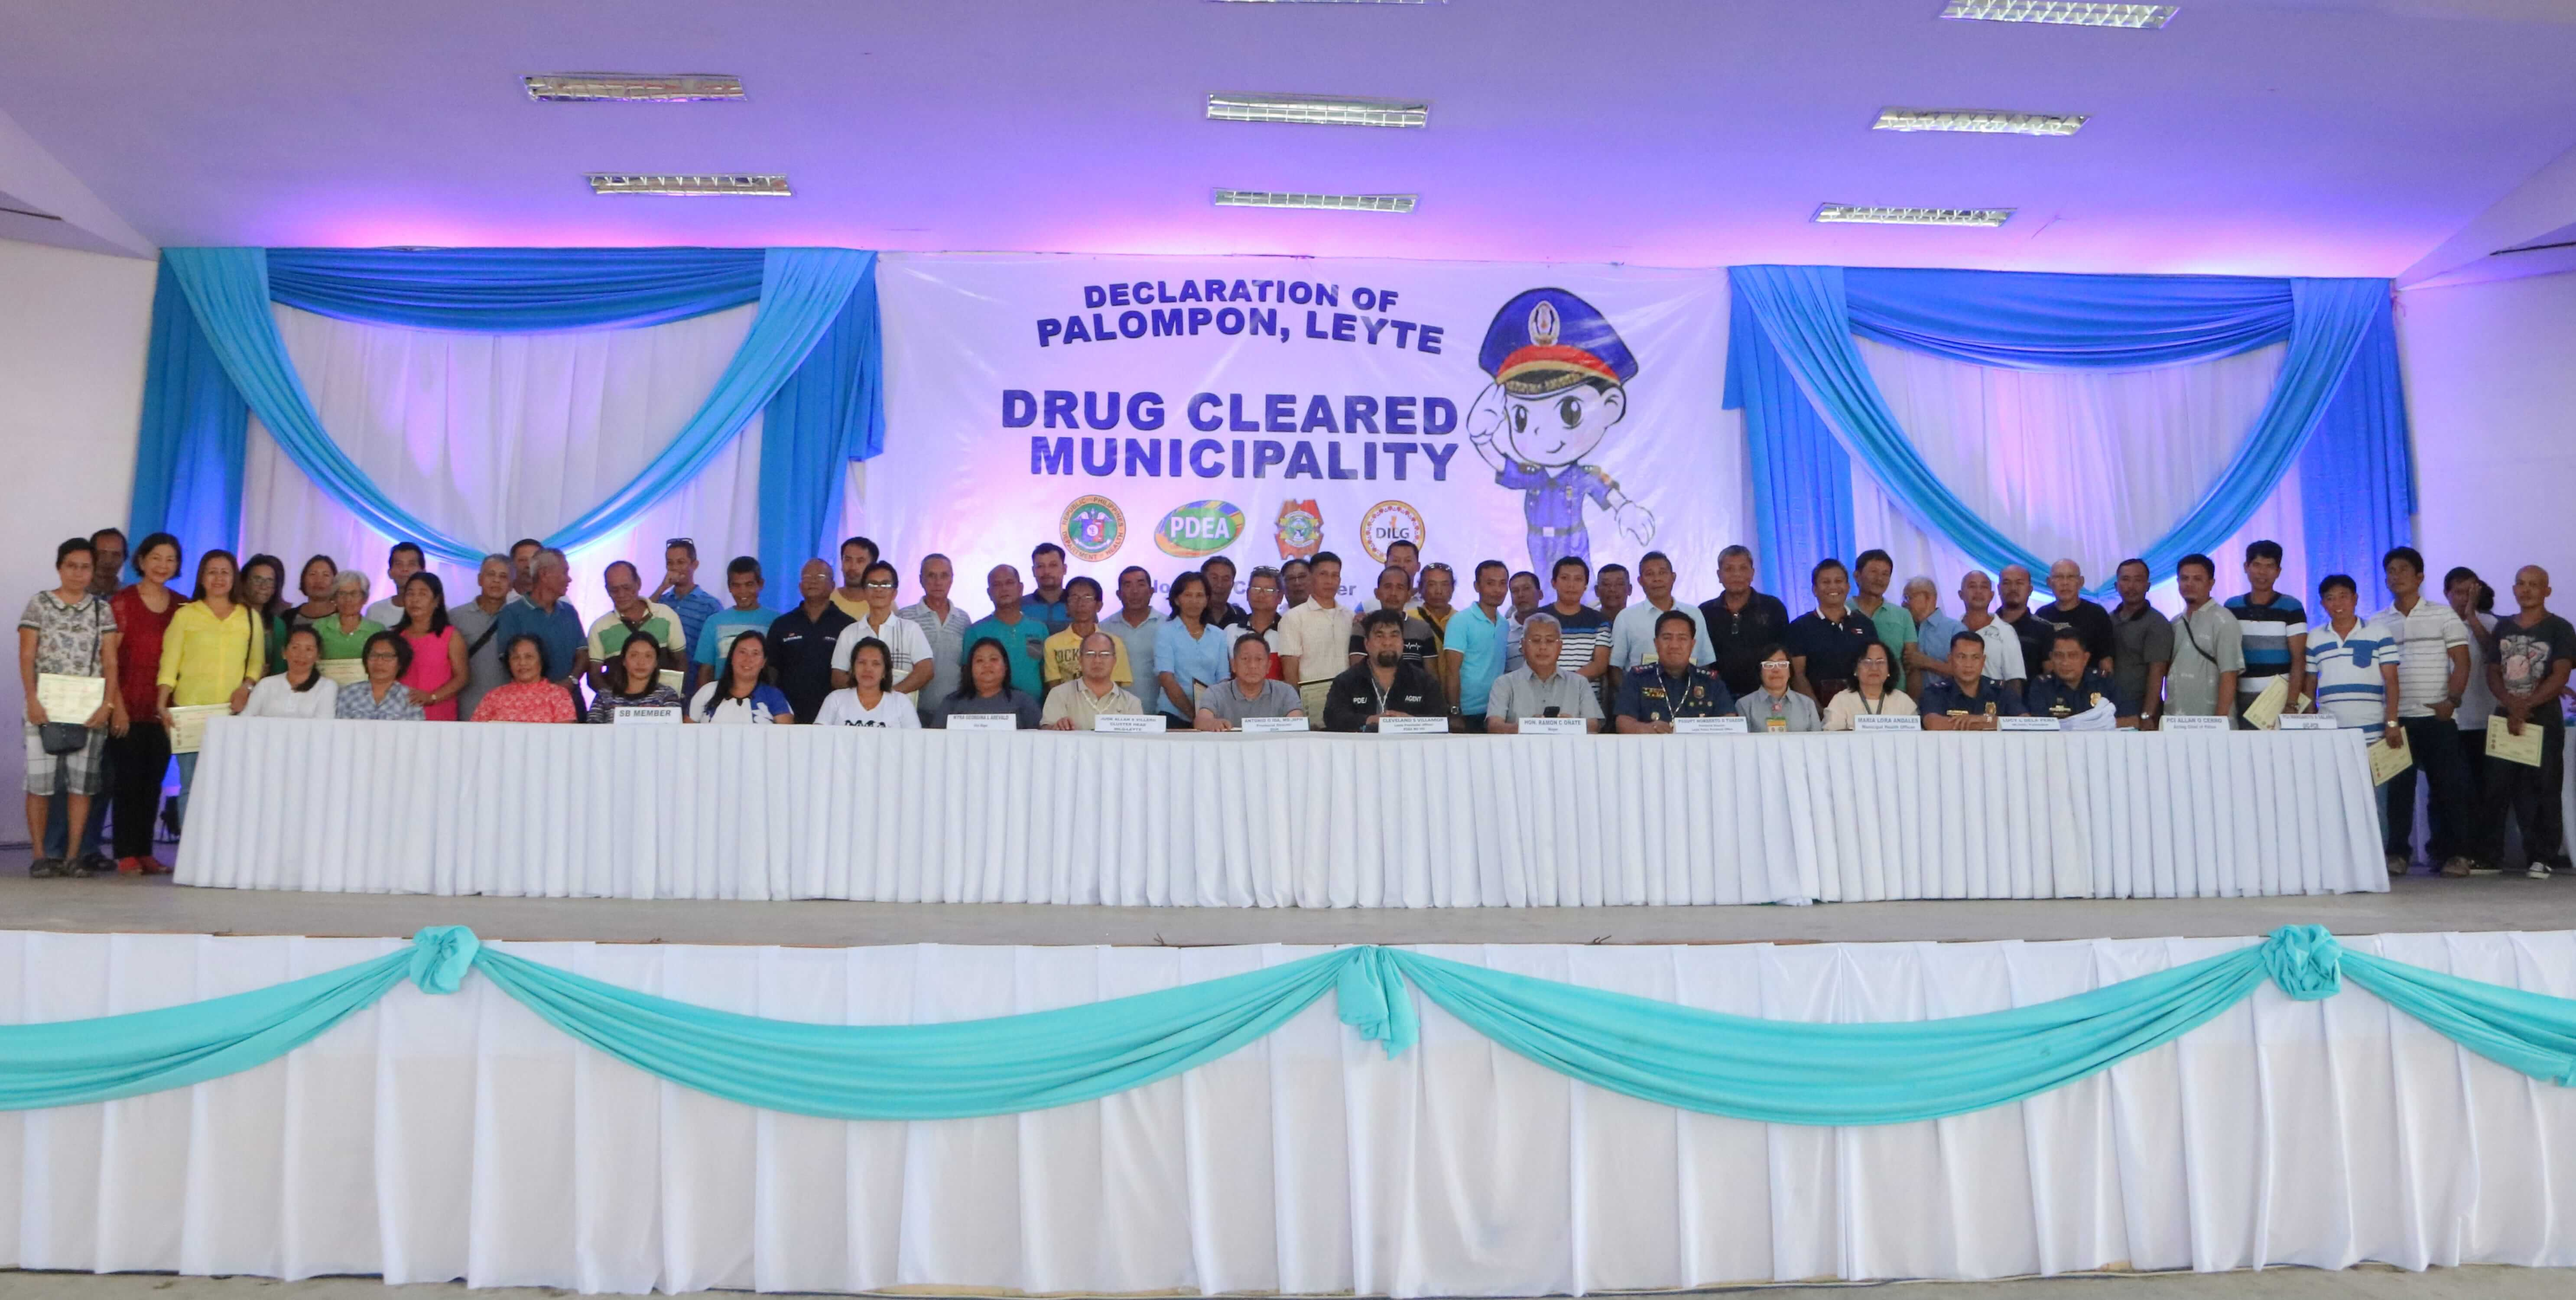 DECLARATION OF PALOMPON, LEYTE AS DRUG CLEARED MUNICIPALITY